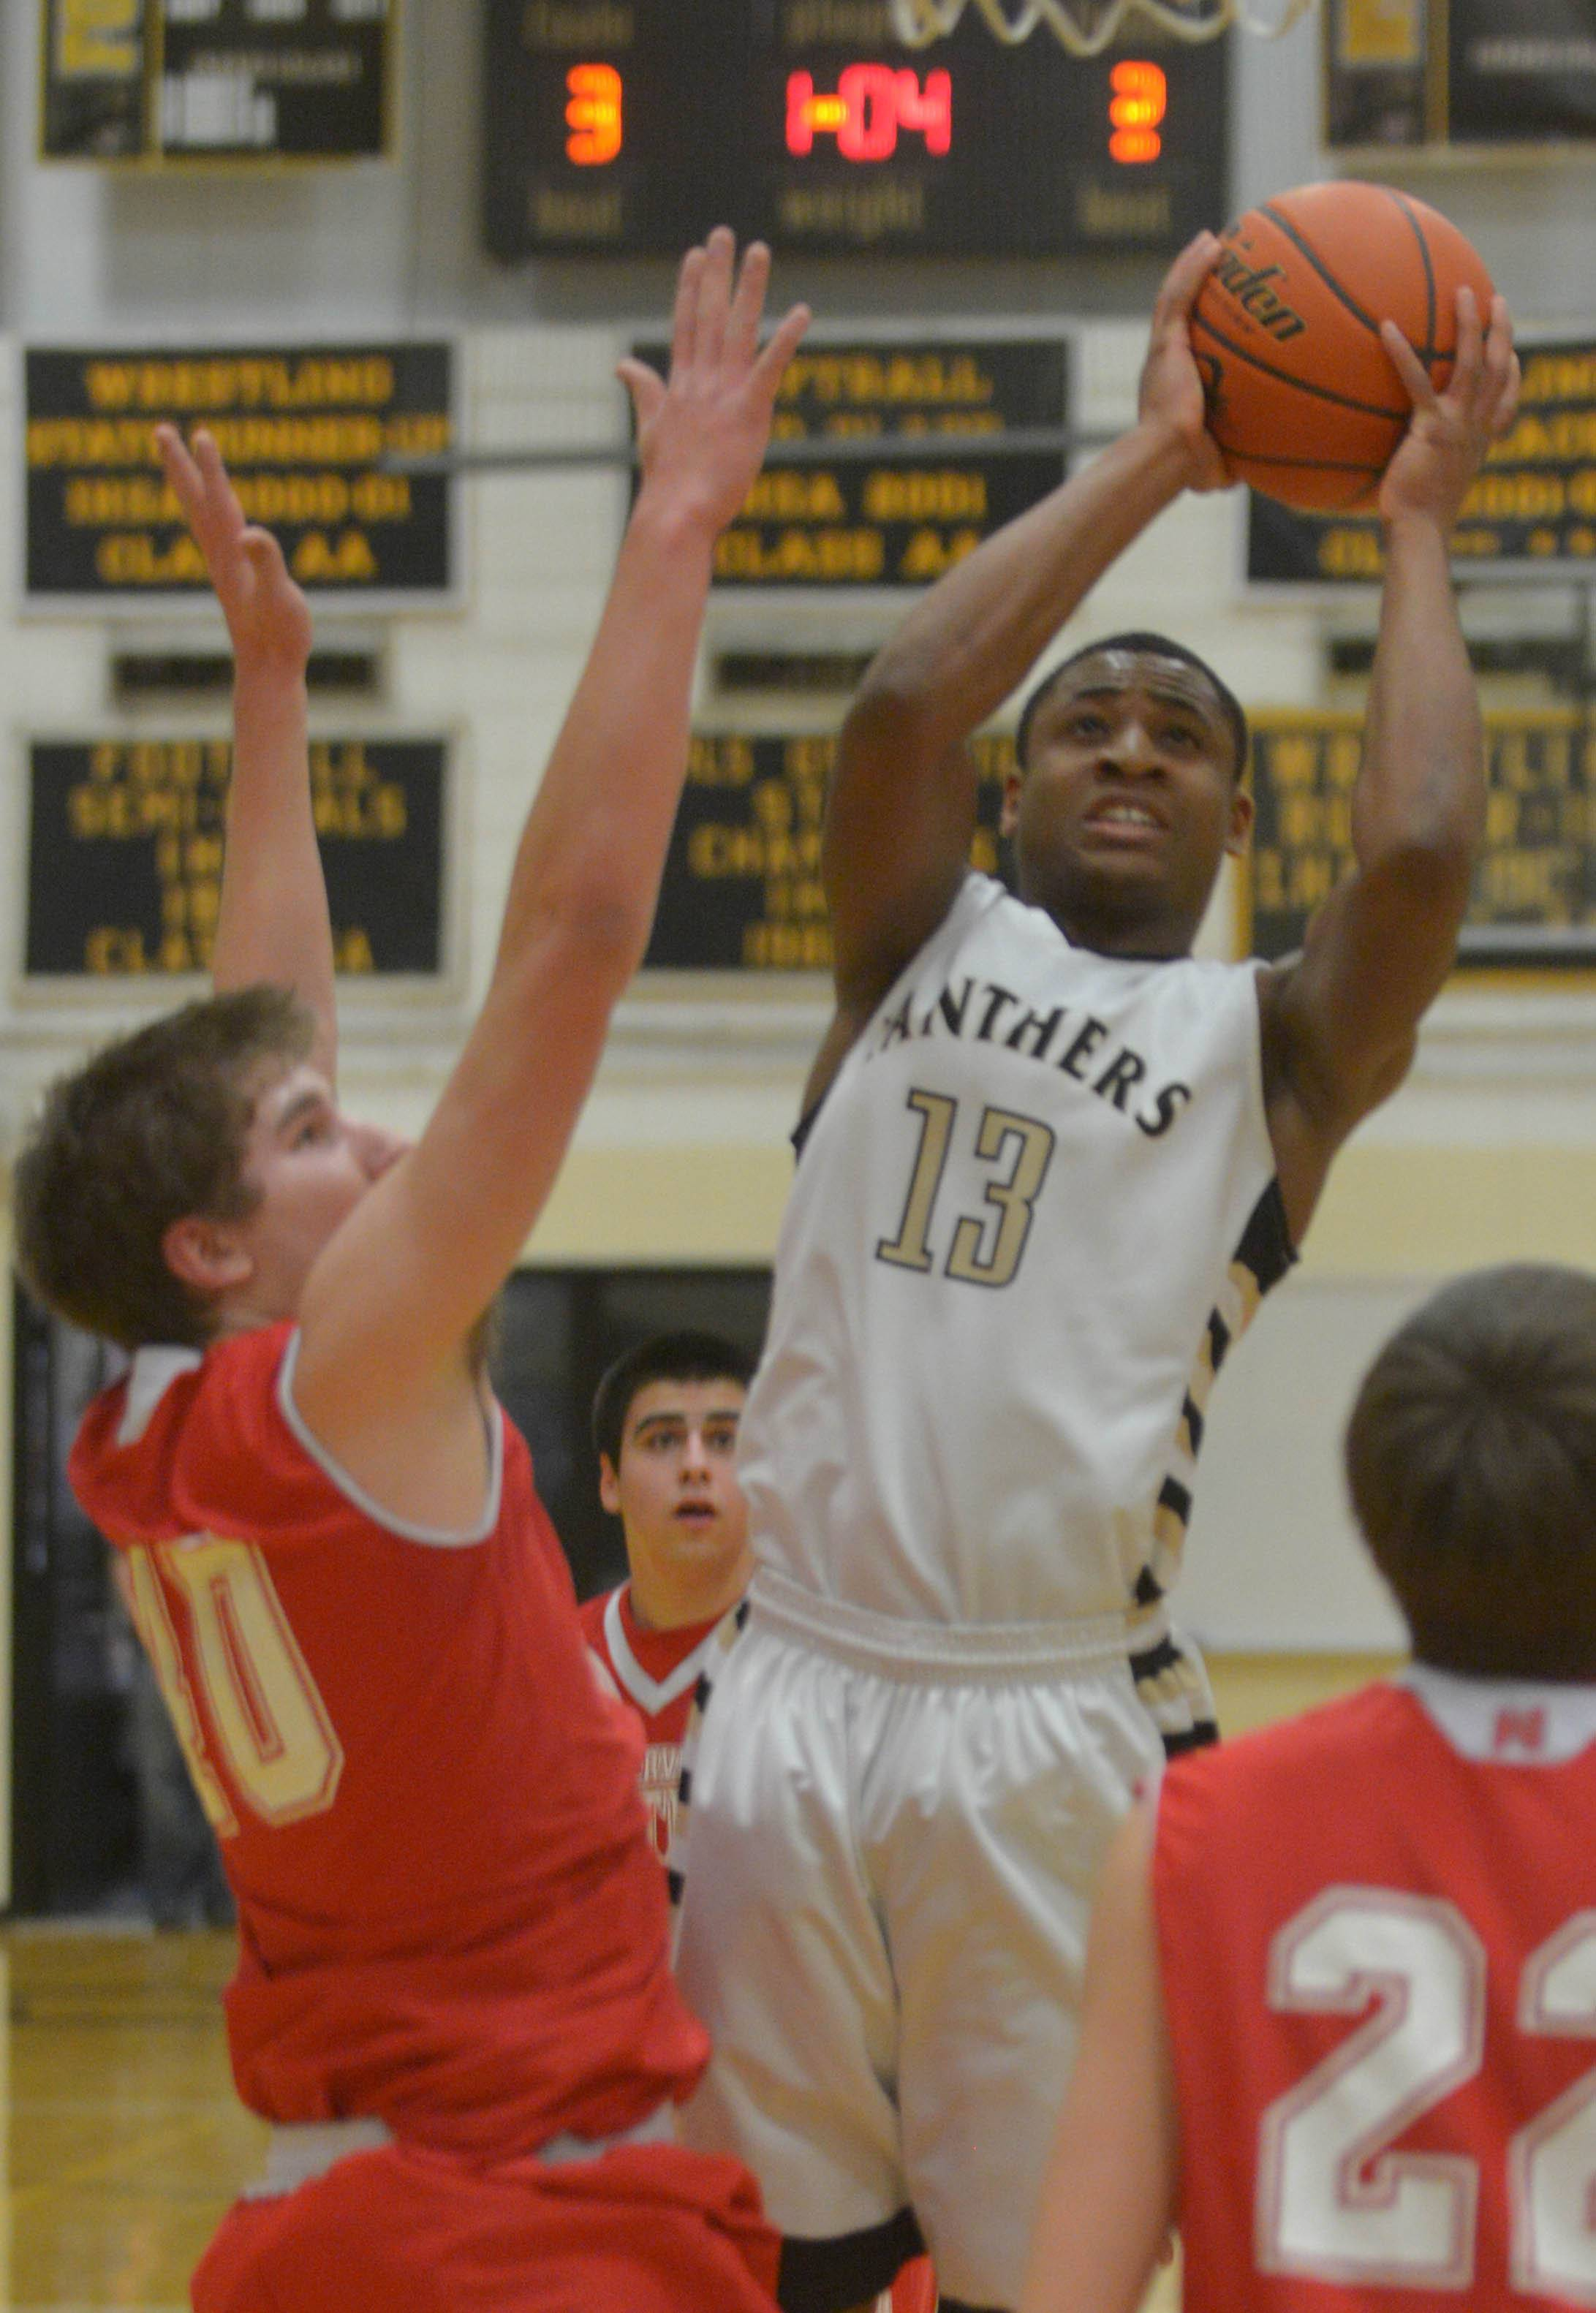 Justin Chamberlain of Glenbard North puts up a shot against Naperville Central Friday.